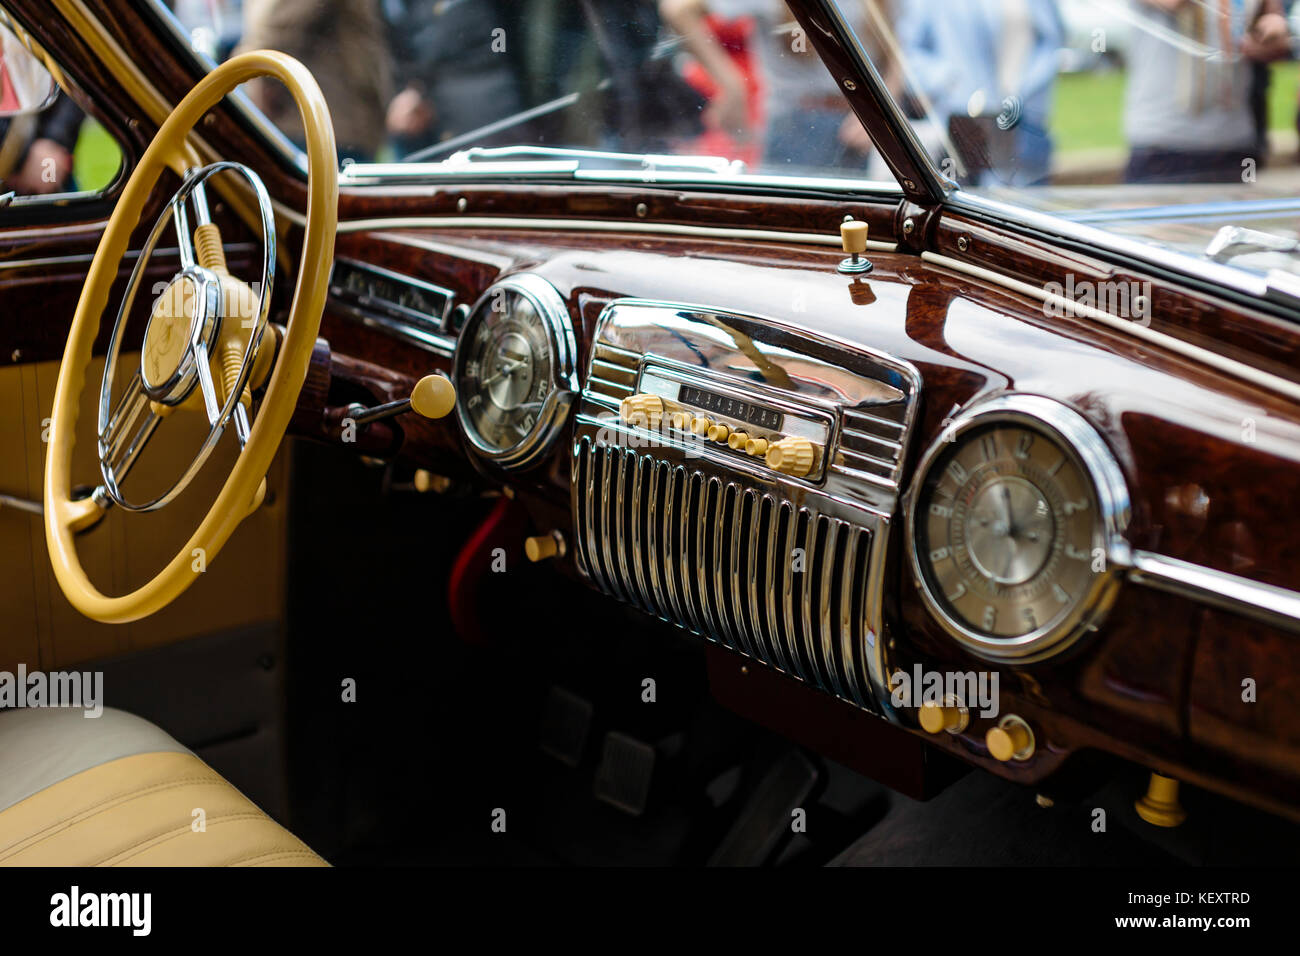 Charming Photograph Of Vintage Car Interior, St. Petersburg, Russia   Stock Image Photo Gallery